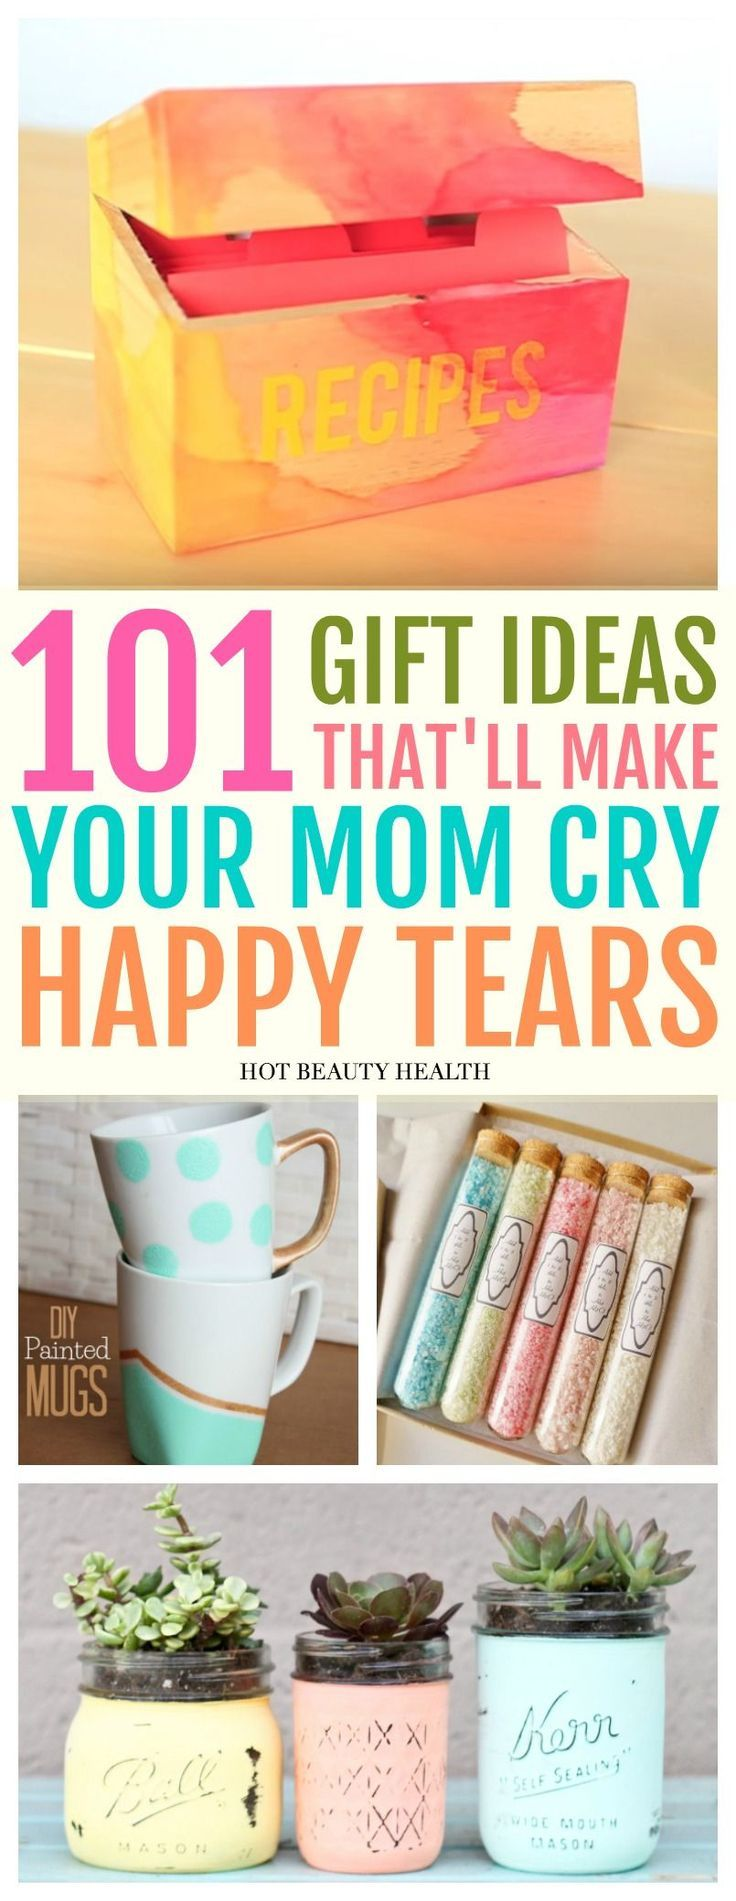 Mother's Day Gift Guide Diy gifts for mom, Homemade